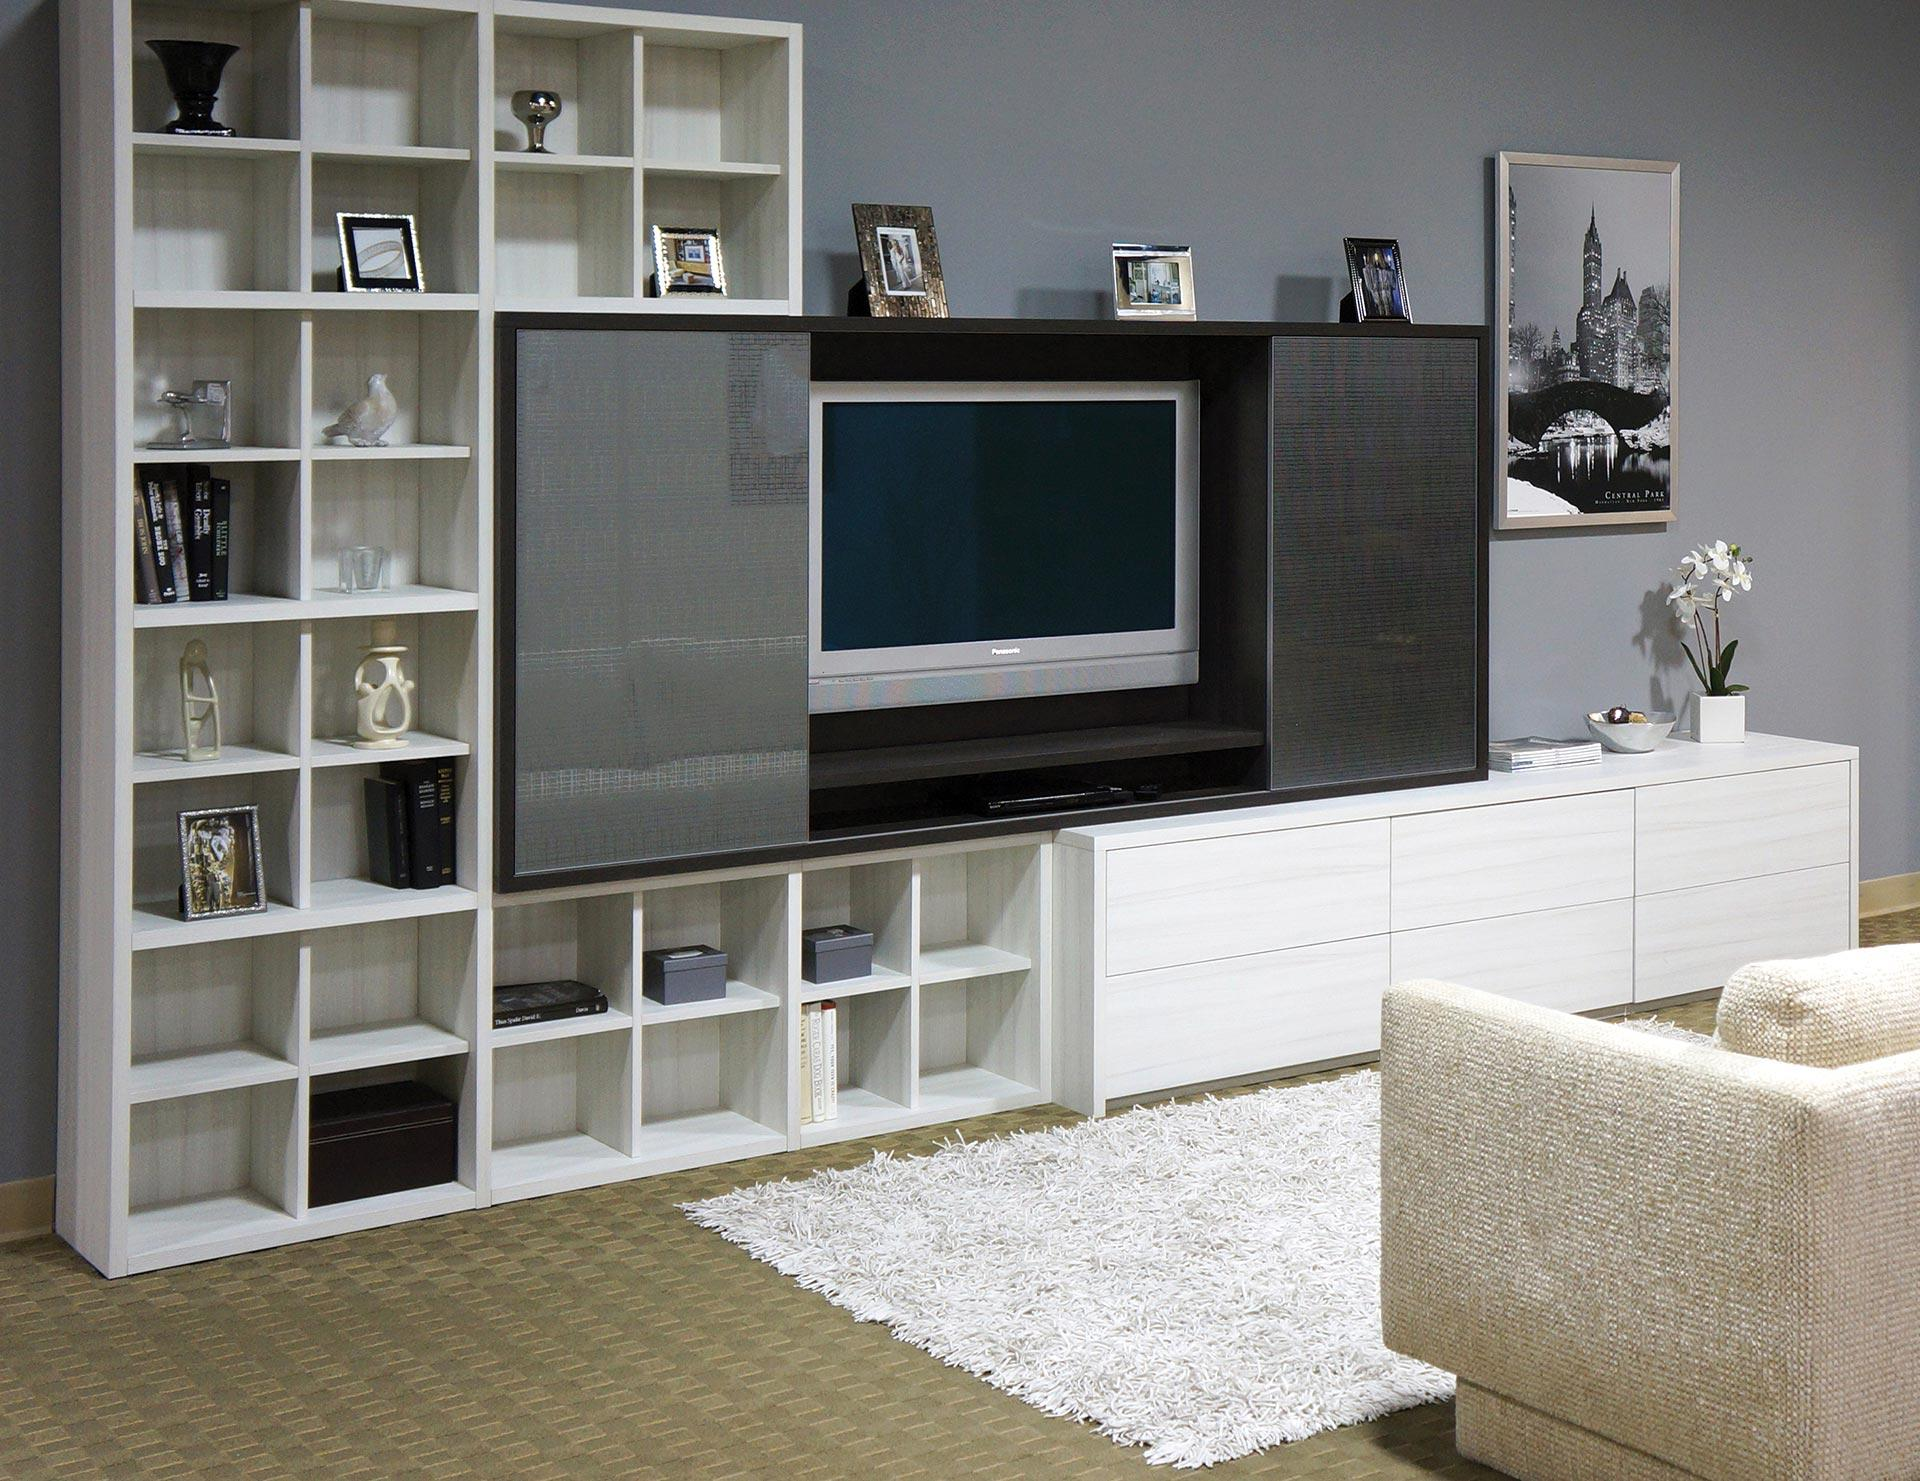 Home Entertainment System With Storage